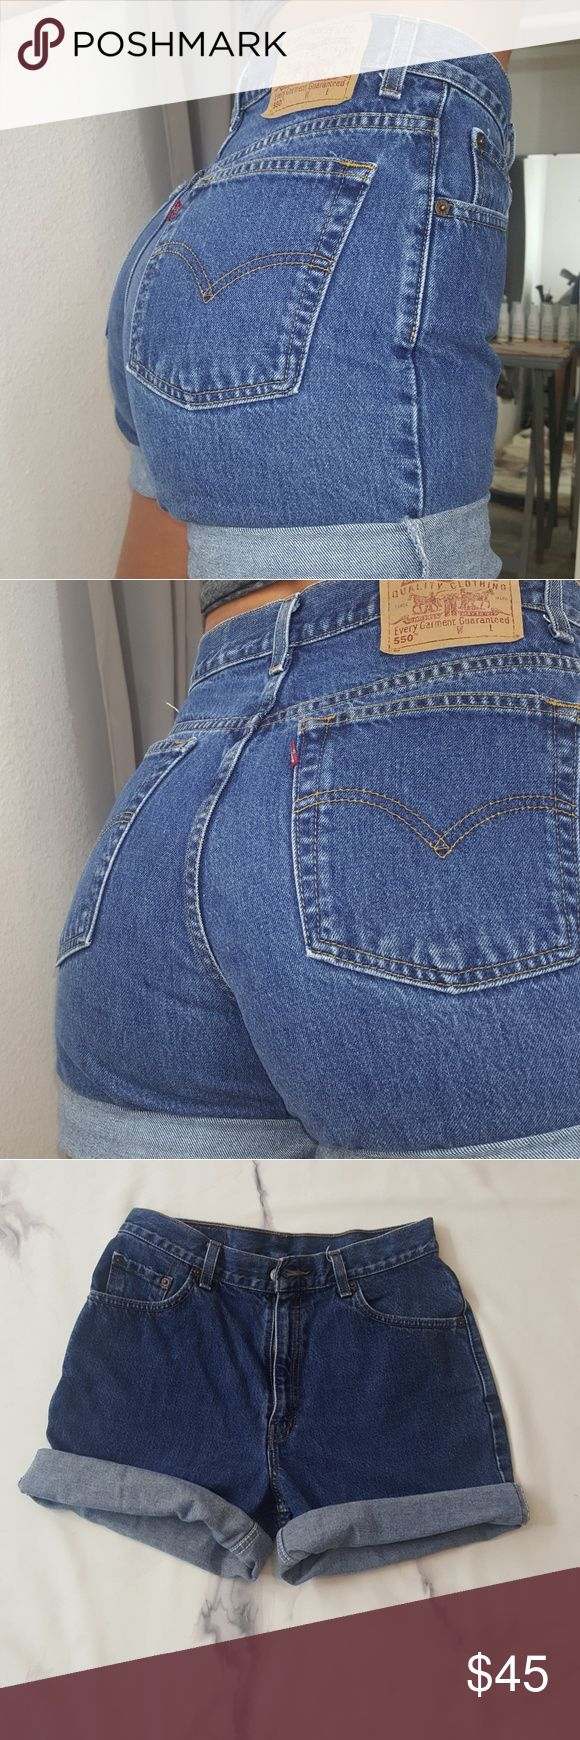 PERFECT VINTAGE LEVI 550 label MOM SHORTS Medium stone wash vintage Levi's mom shorts high rise. Can be adjusted to the length you like them rolled vintage size 9 10 so modern day size 7 or so photos are of me modeling for a reference I have a 25 inch waist and about a 32 inch bum and these fit a little bigger I believe that they would fit a size 28 to a small size 30 best. However if you have wider hips and a small bum and you prefer to pull them up higher they may be a very good fit for a…